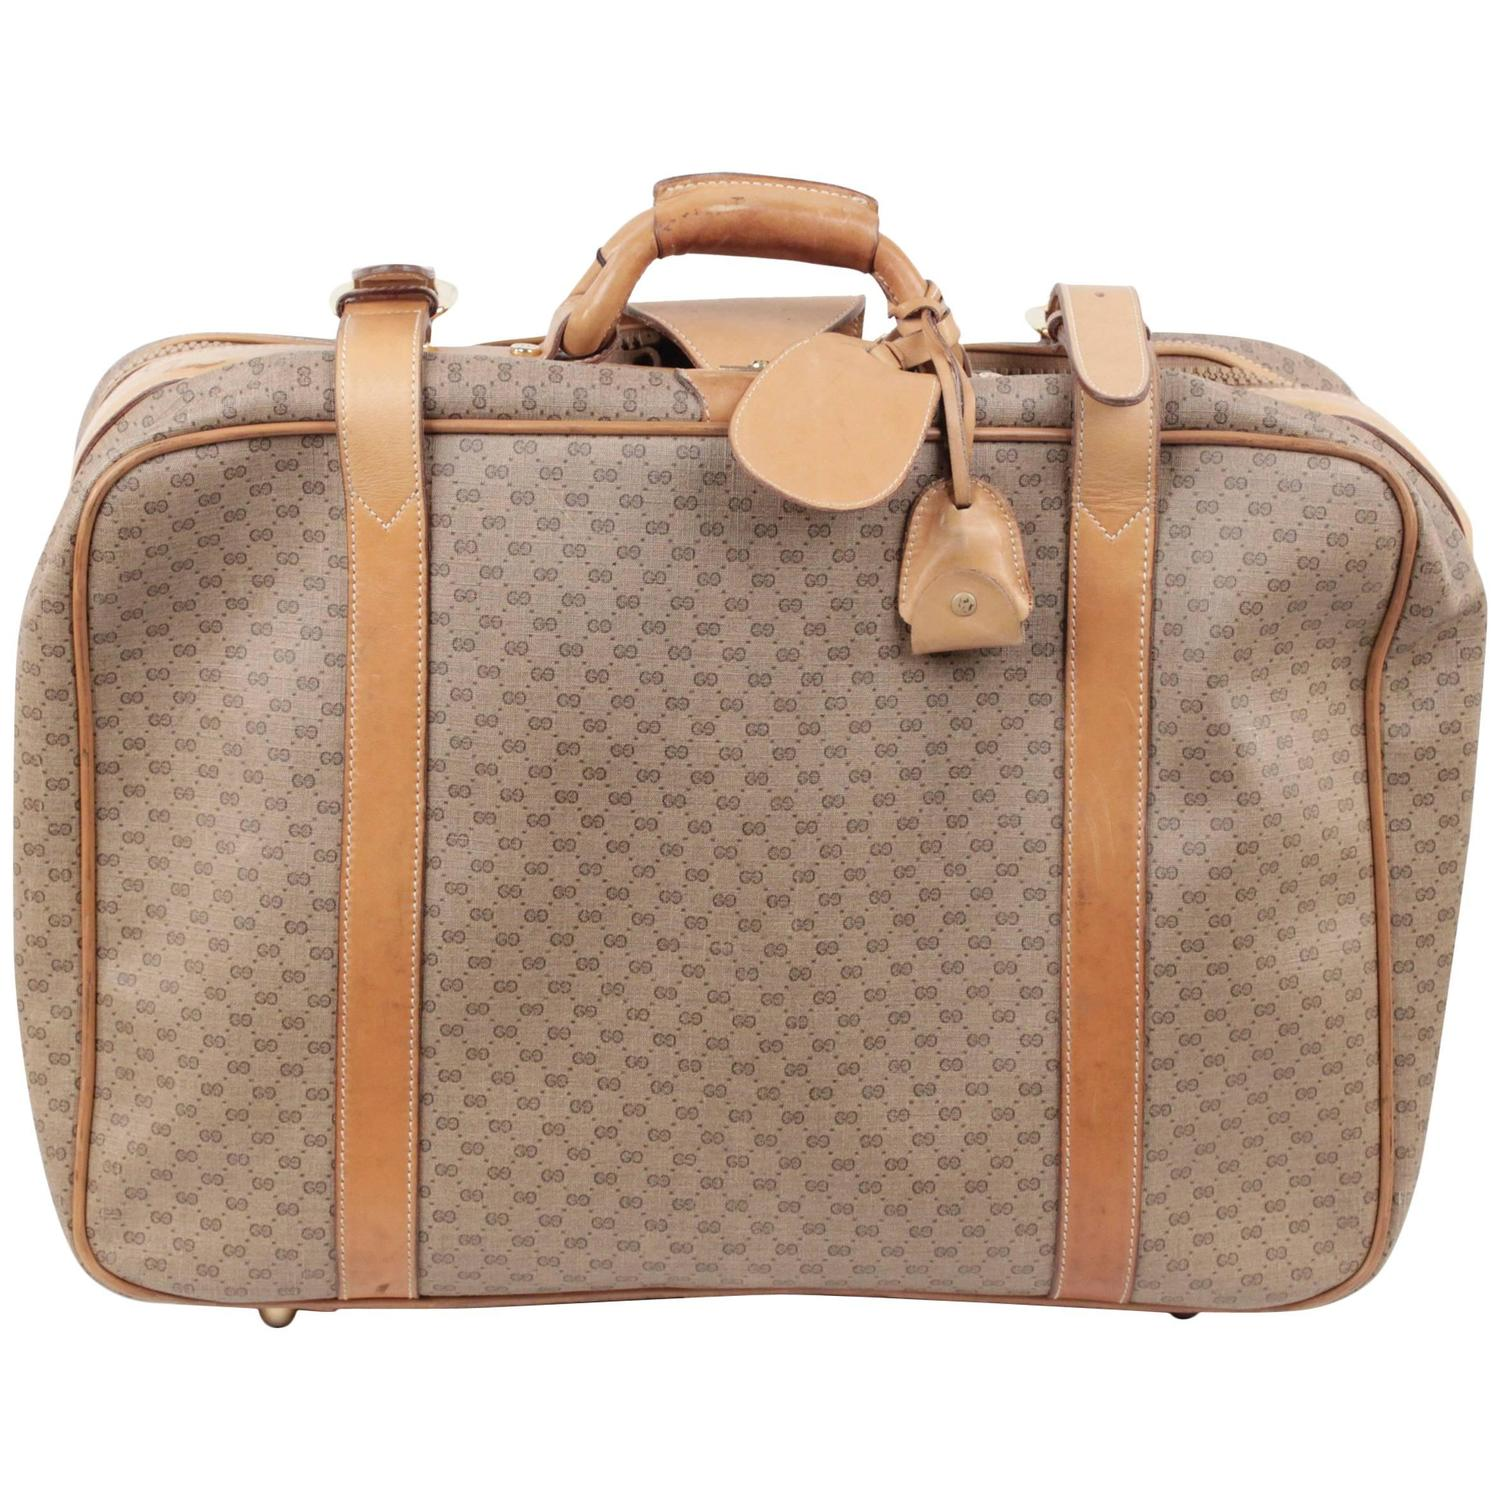 8e6fb9303bbd GUCCI VINTAGE Tan GG MONOGRAM Canvas CABIN SIZE SUITCASE Travel Bag For  Sale at 1stdibs